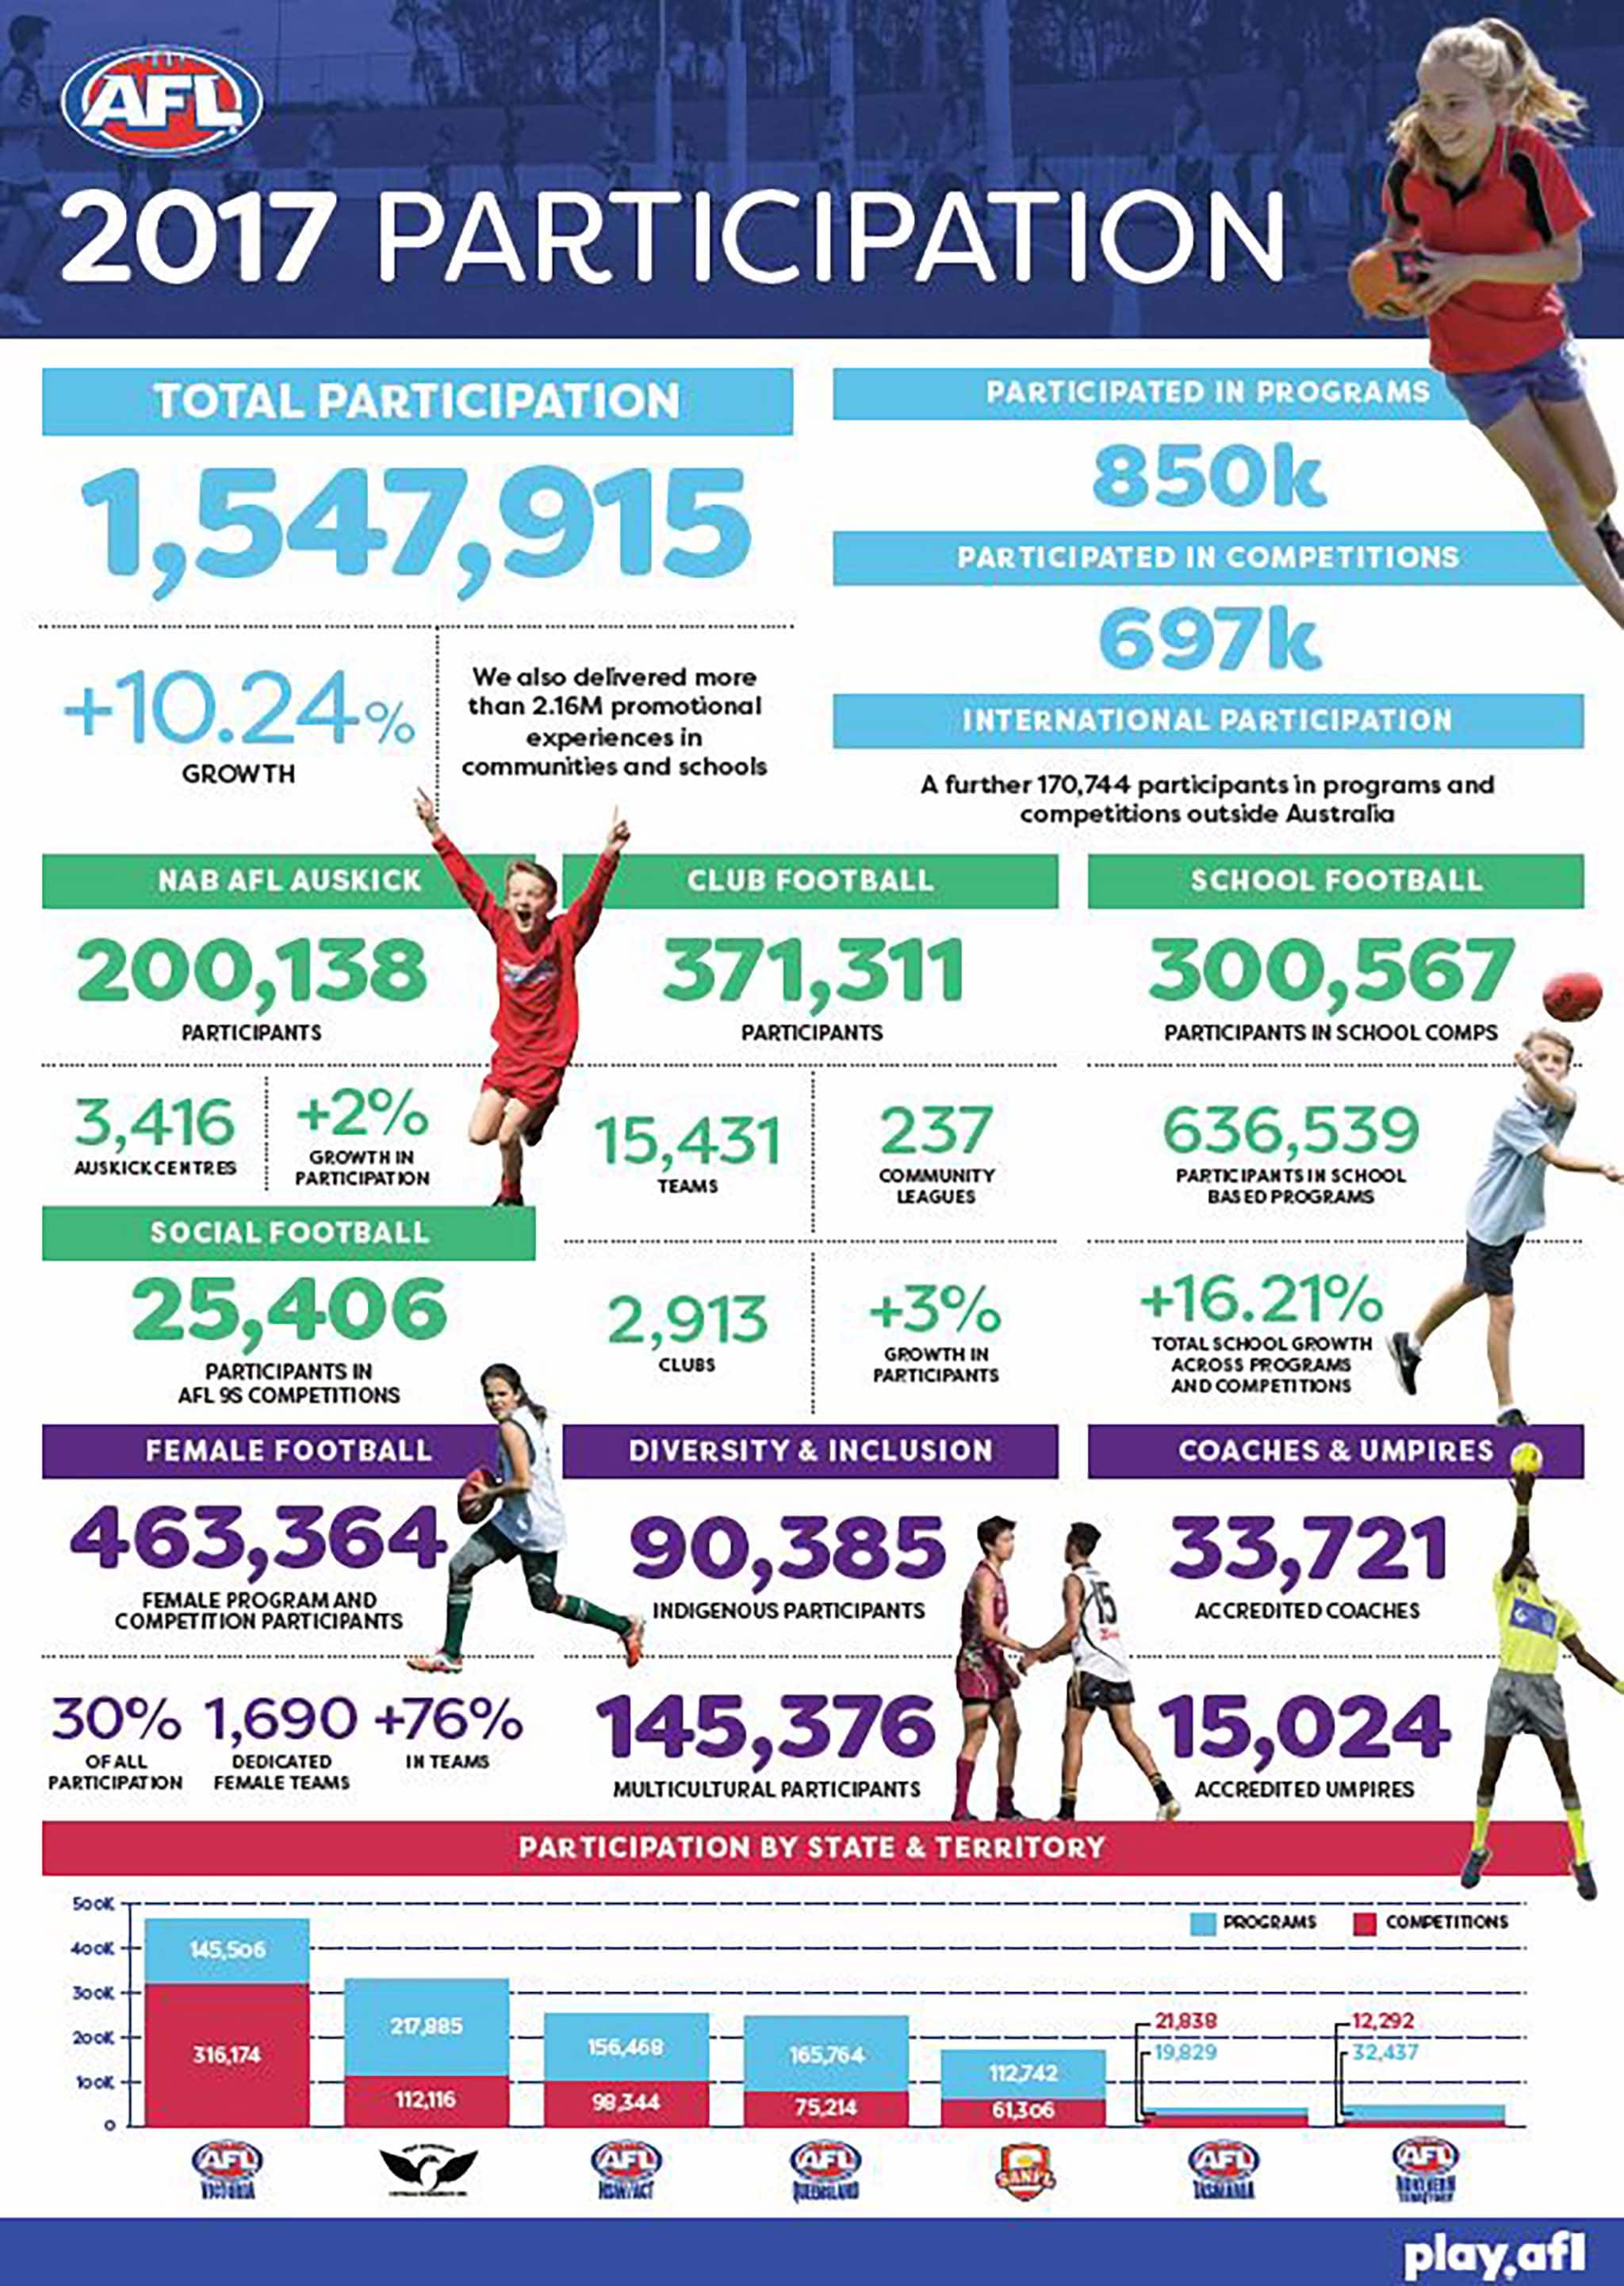 Women's growth helps hit record numbers - AFL com au